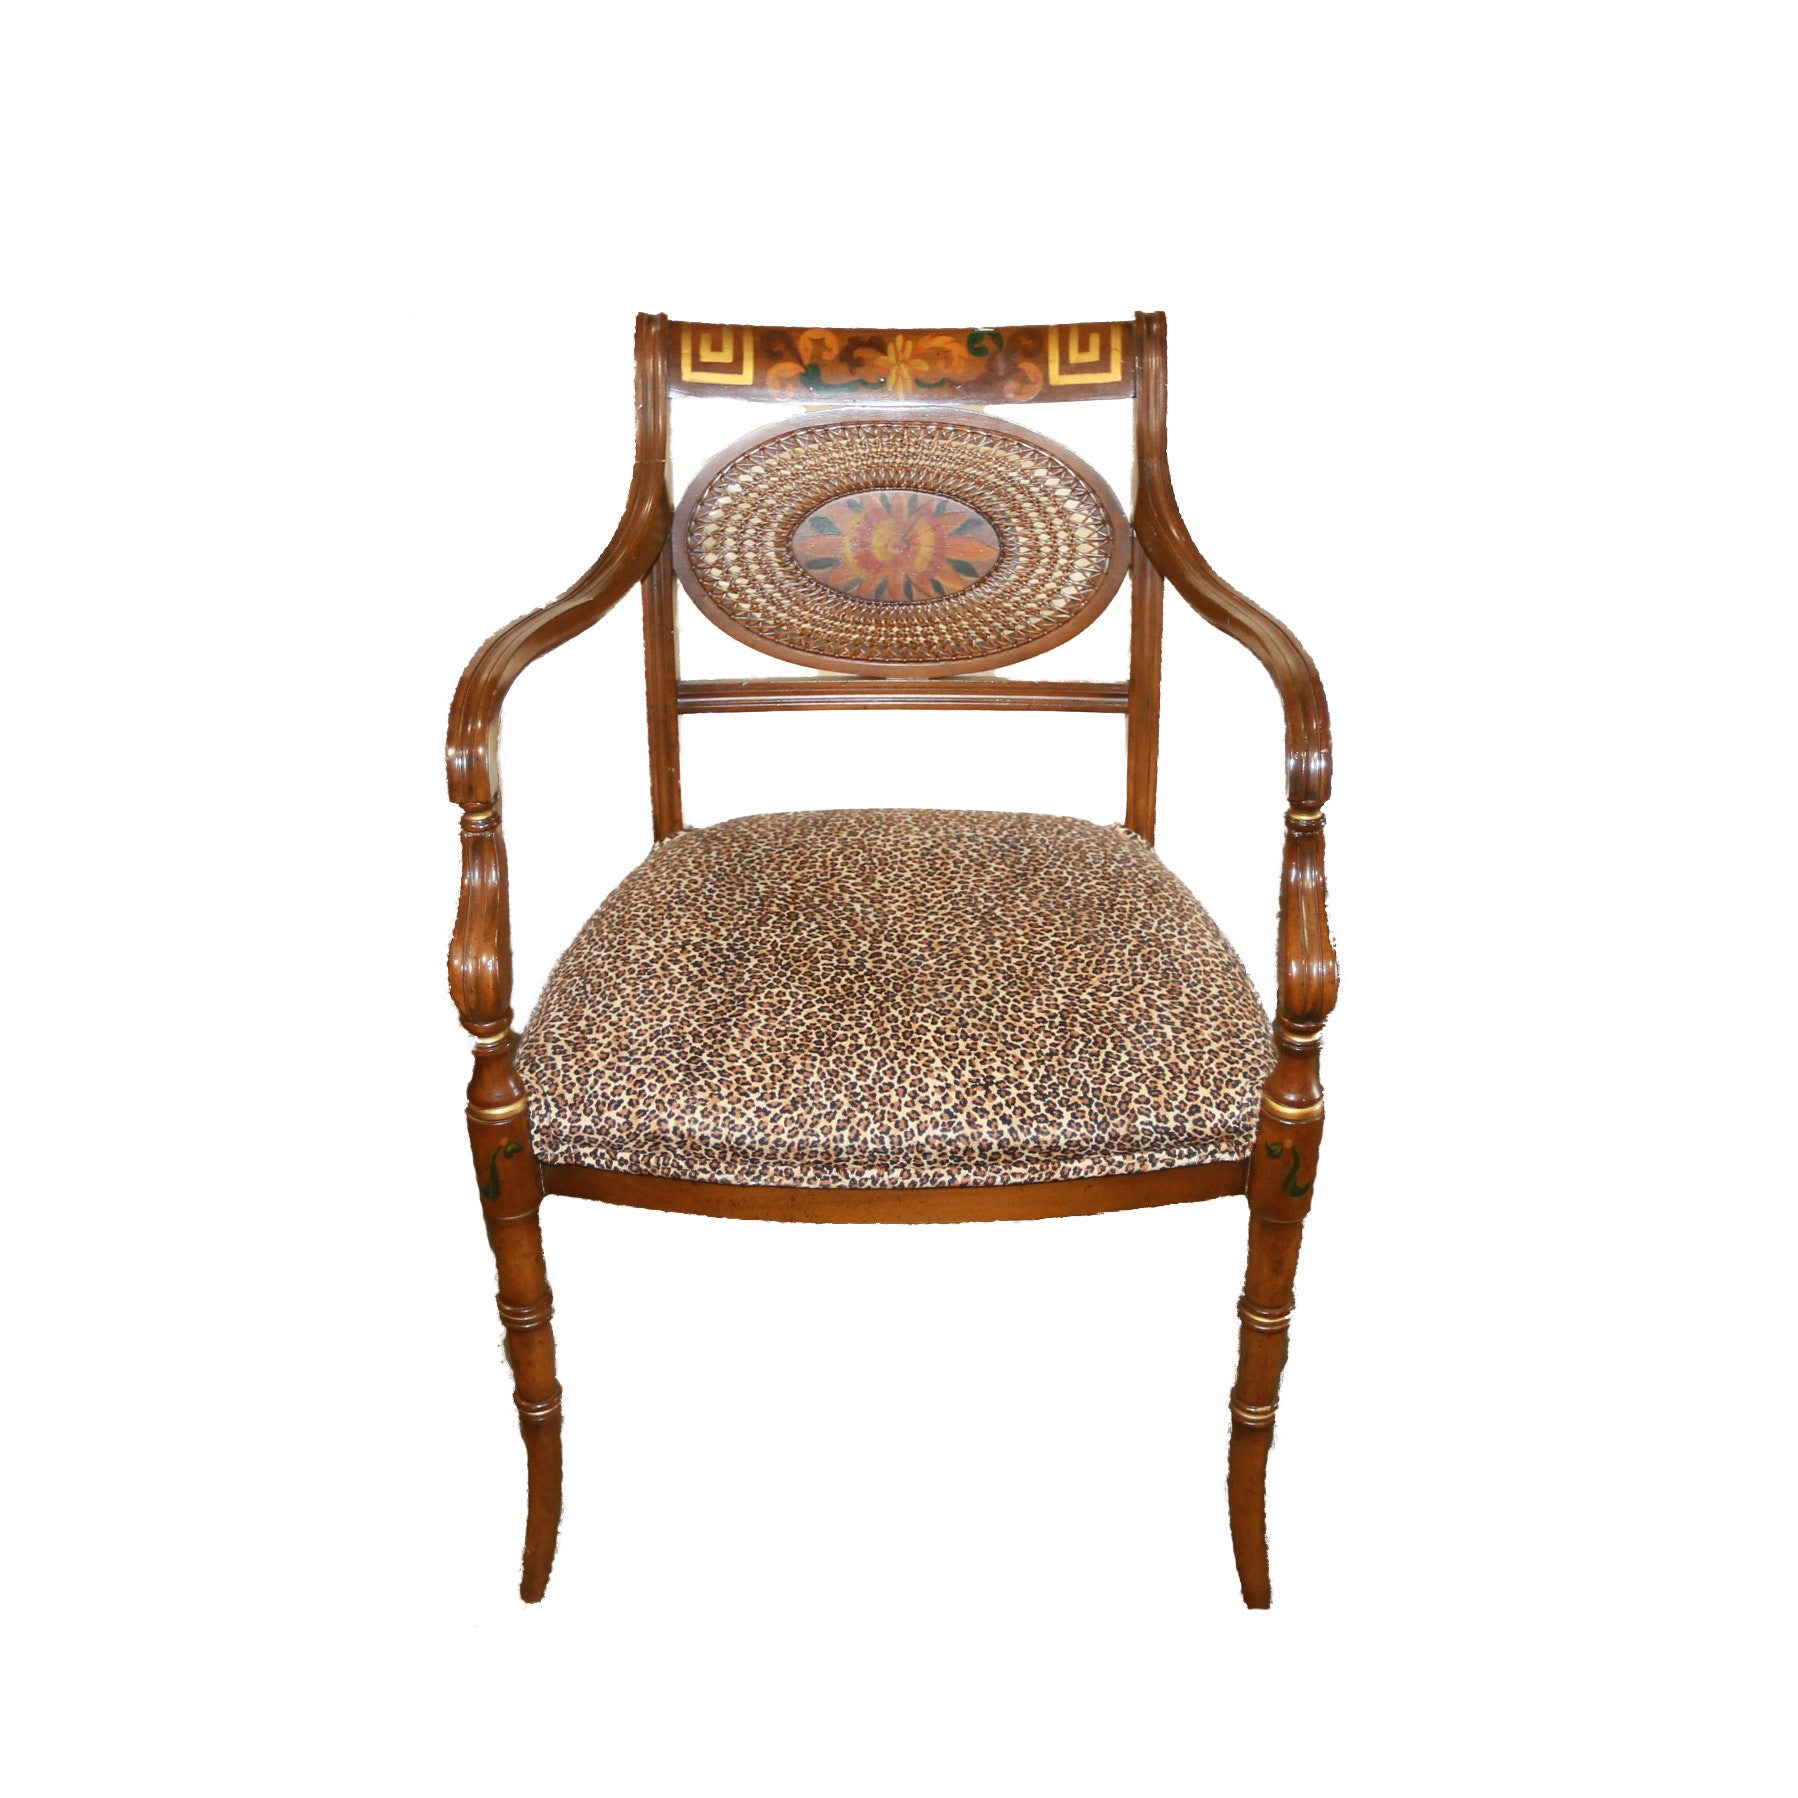 Vintage Adams Style Hand-Painted Chair With Leopard Upholstery